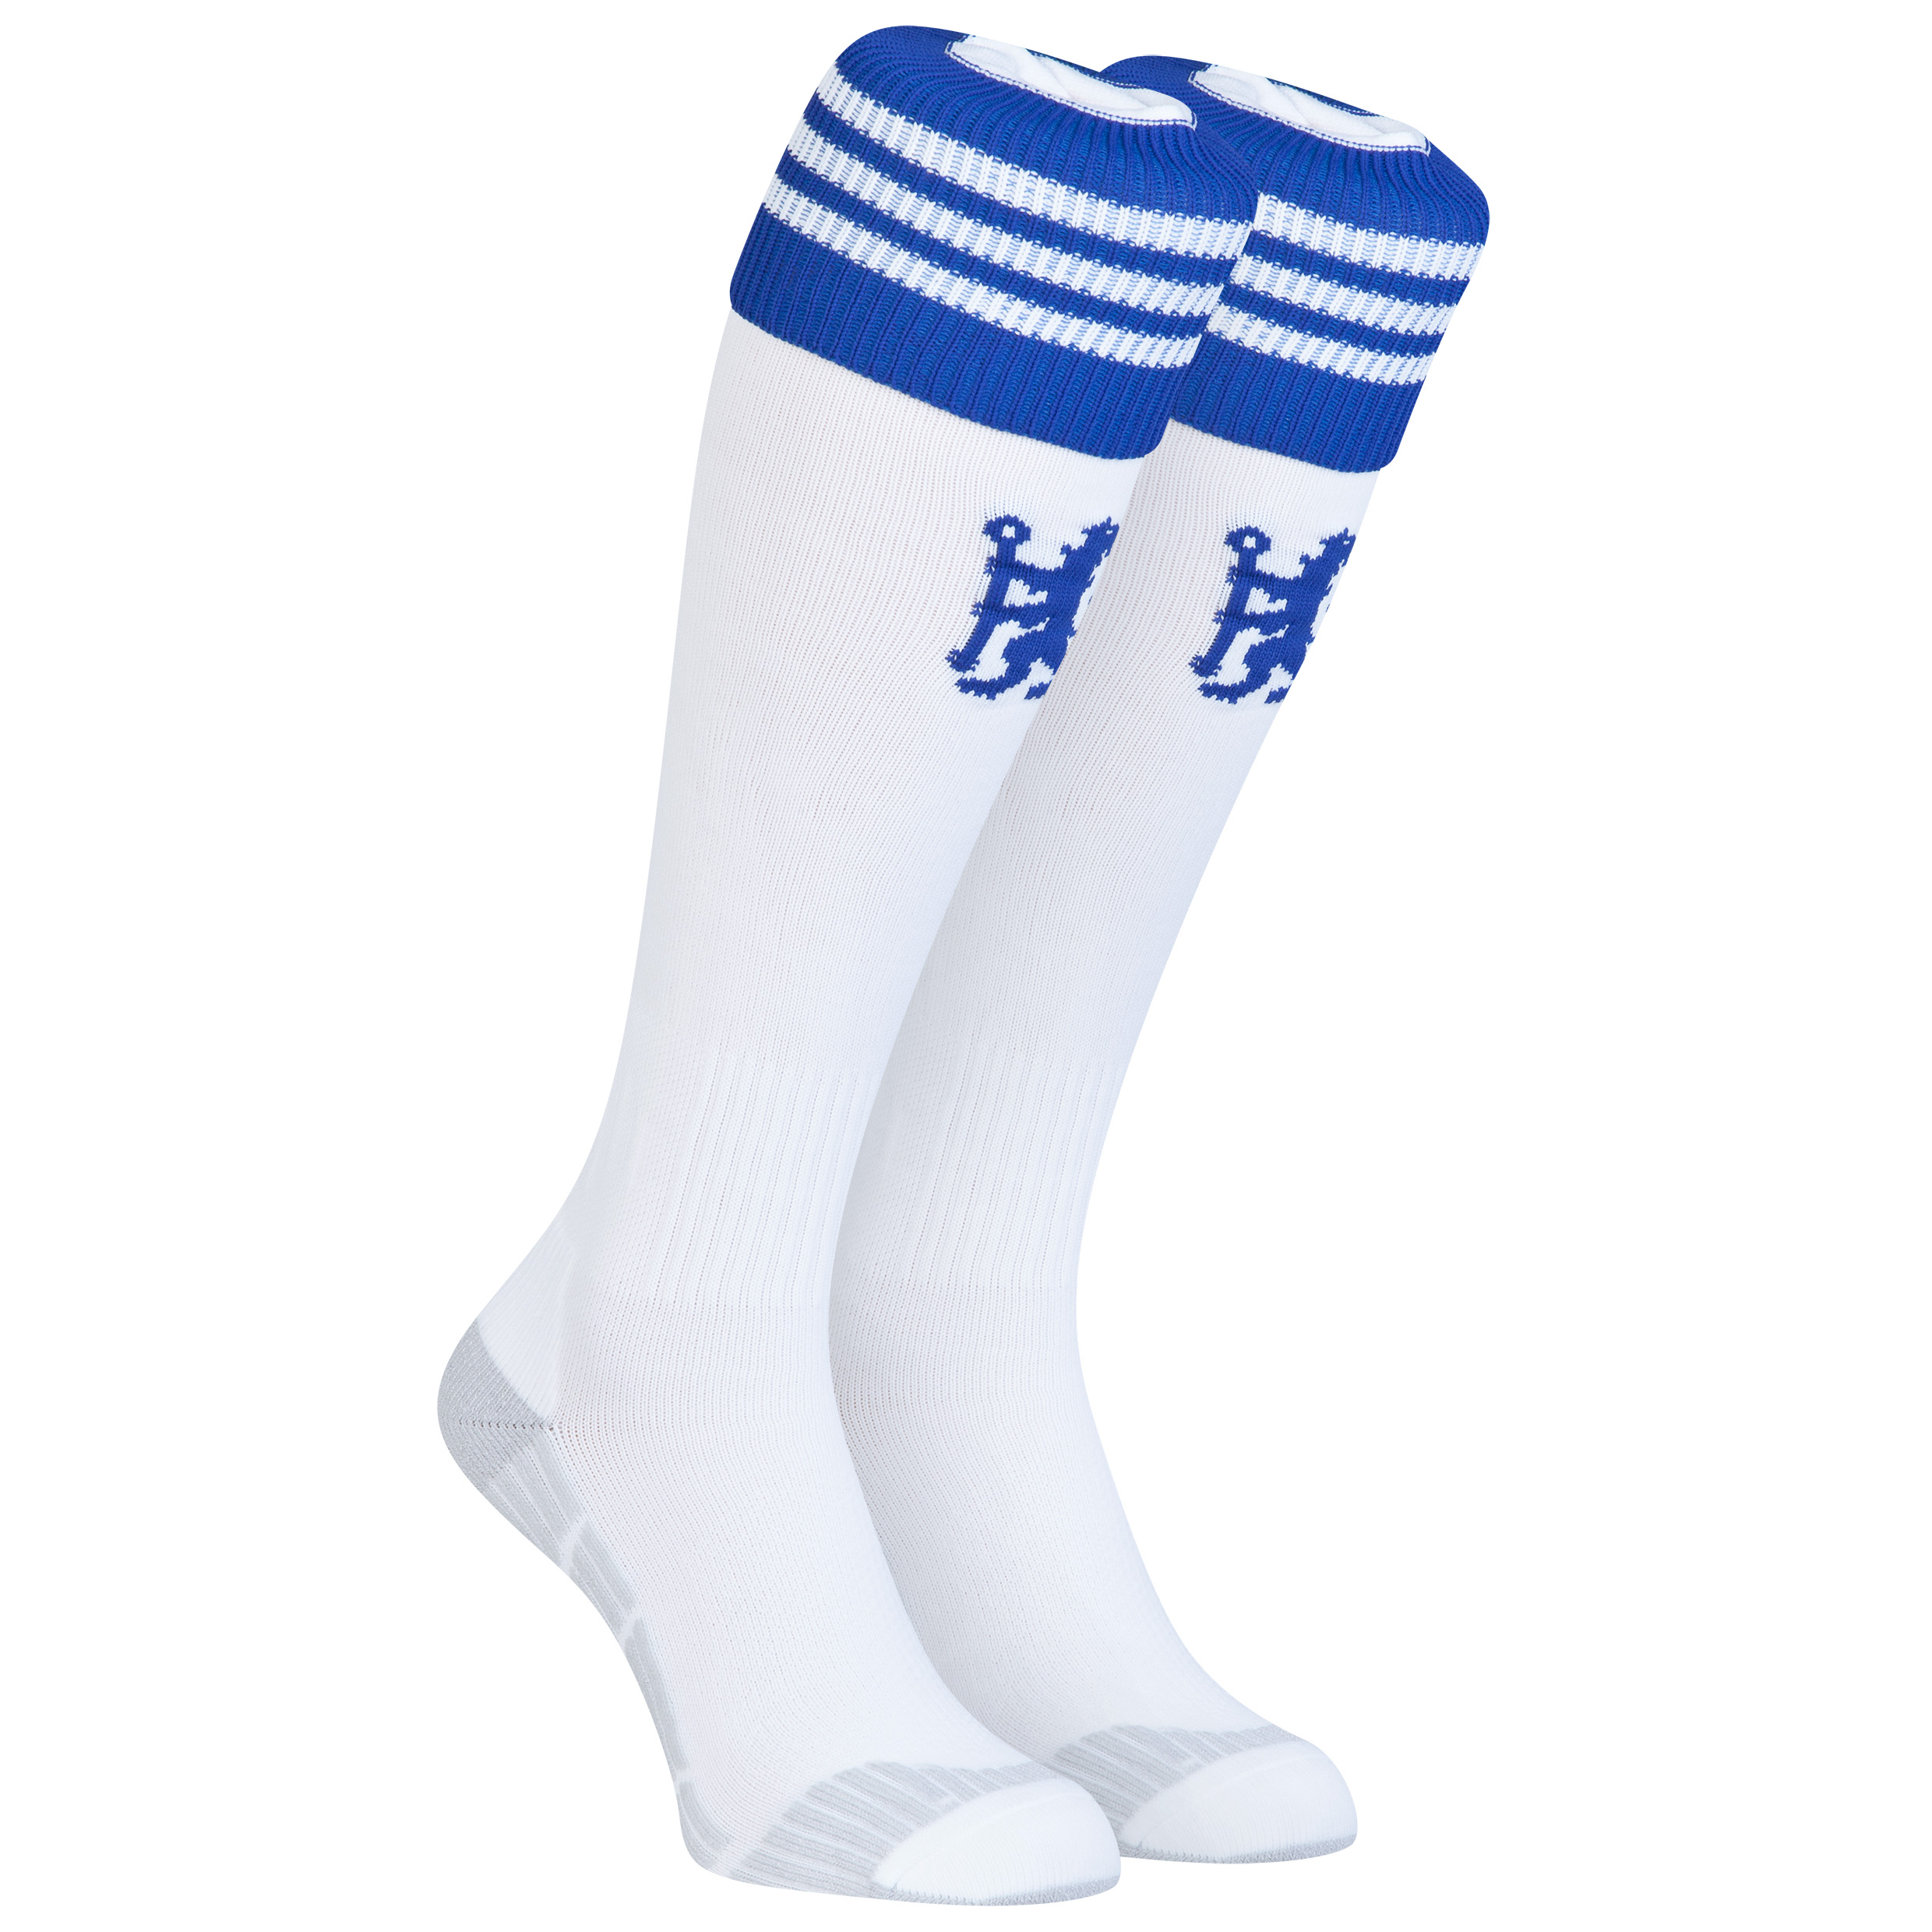 Chelsea Home Socks 2014/15 White